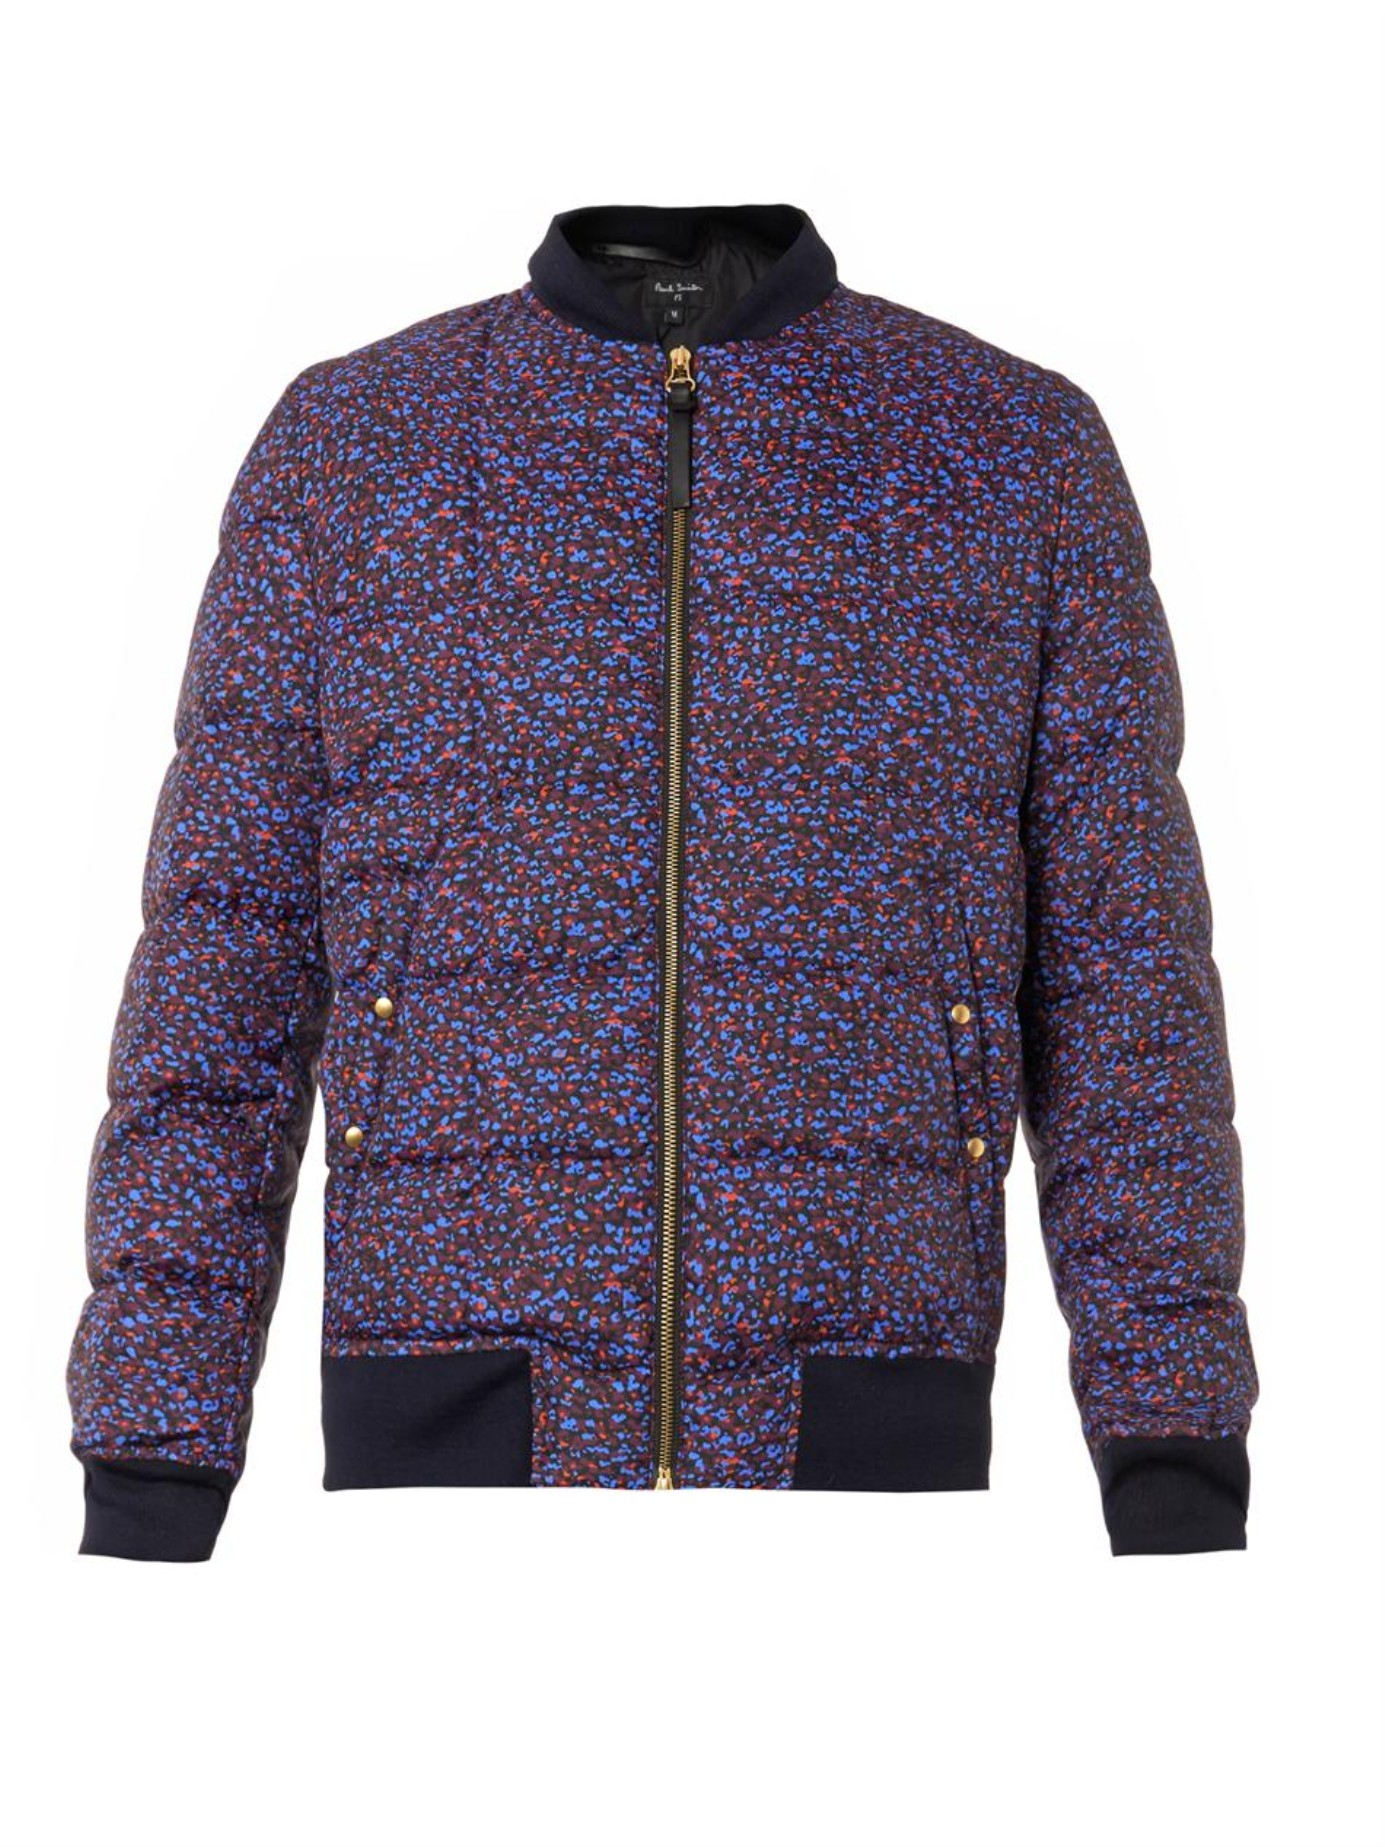 Ps By Paul Smith Stippled Colour Print Bomber Jacket For